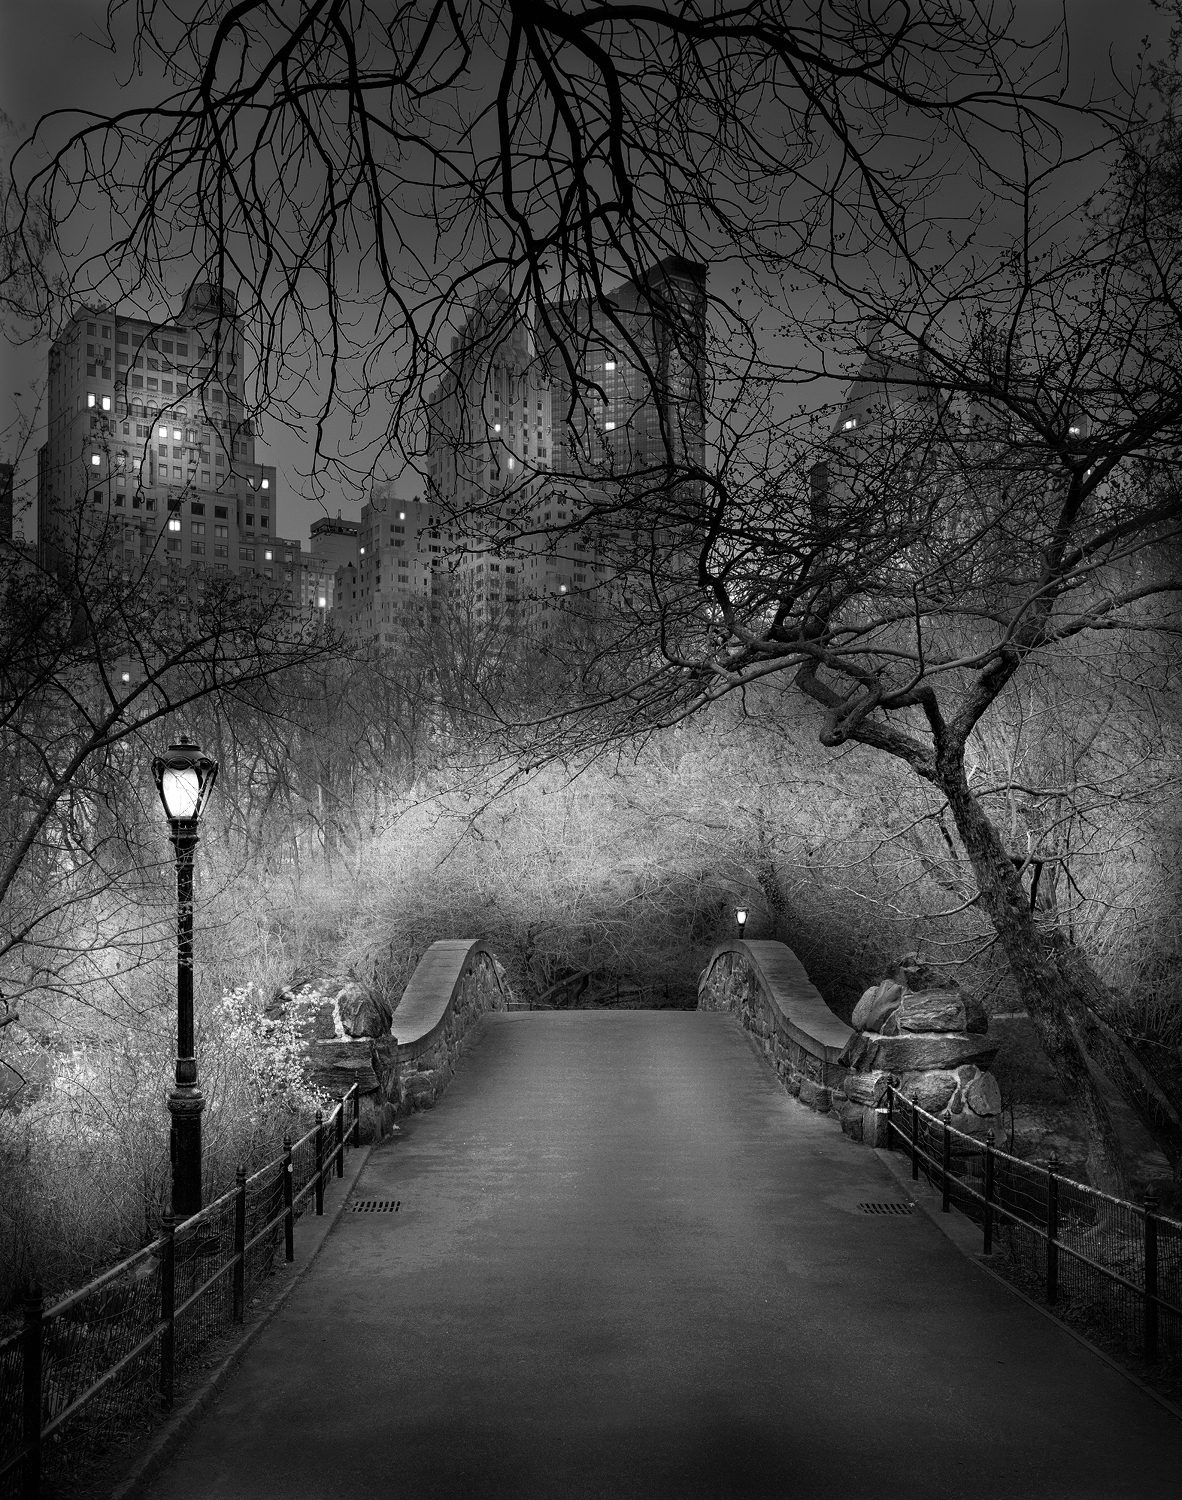 Deep In A Dream - Central Park - The Gapstow Bridge